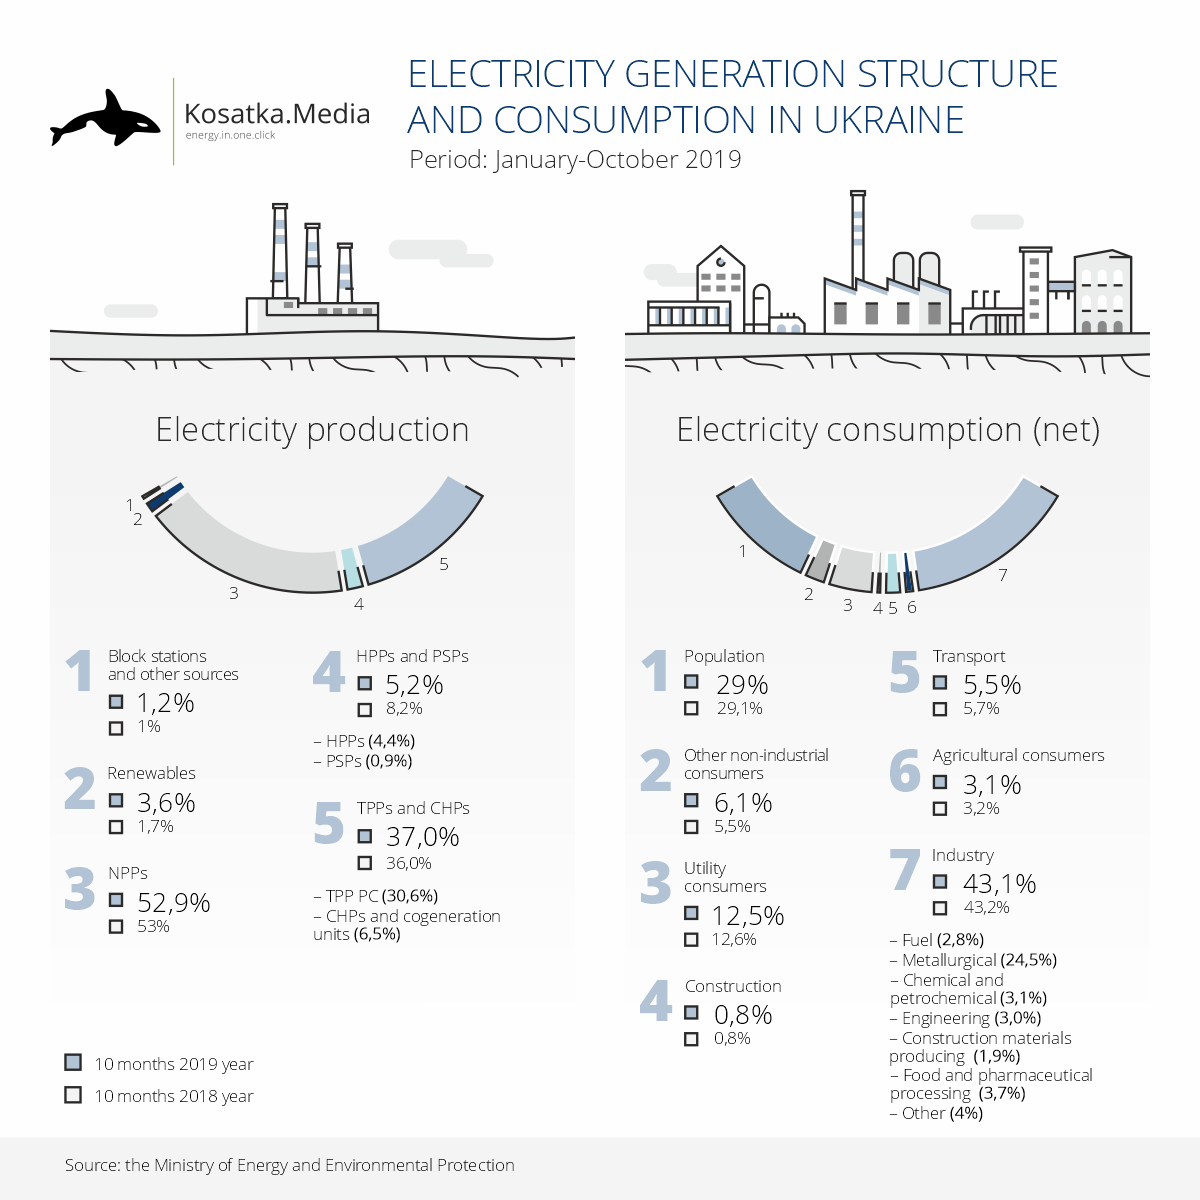 Electricity generation and consumpsion structures in Ukraine (January-October 2019)